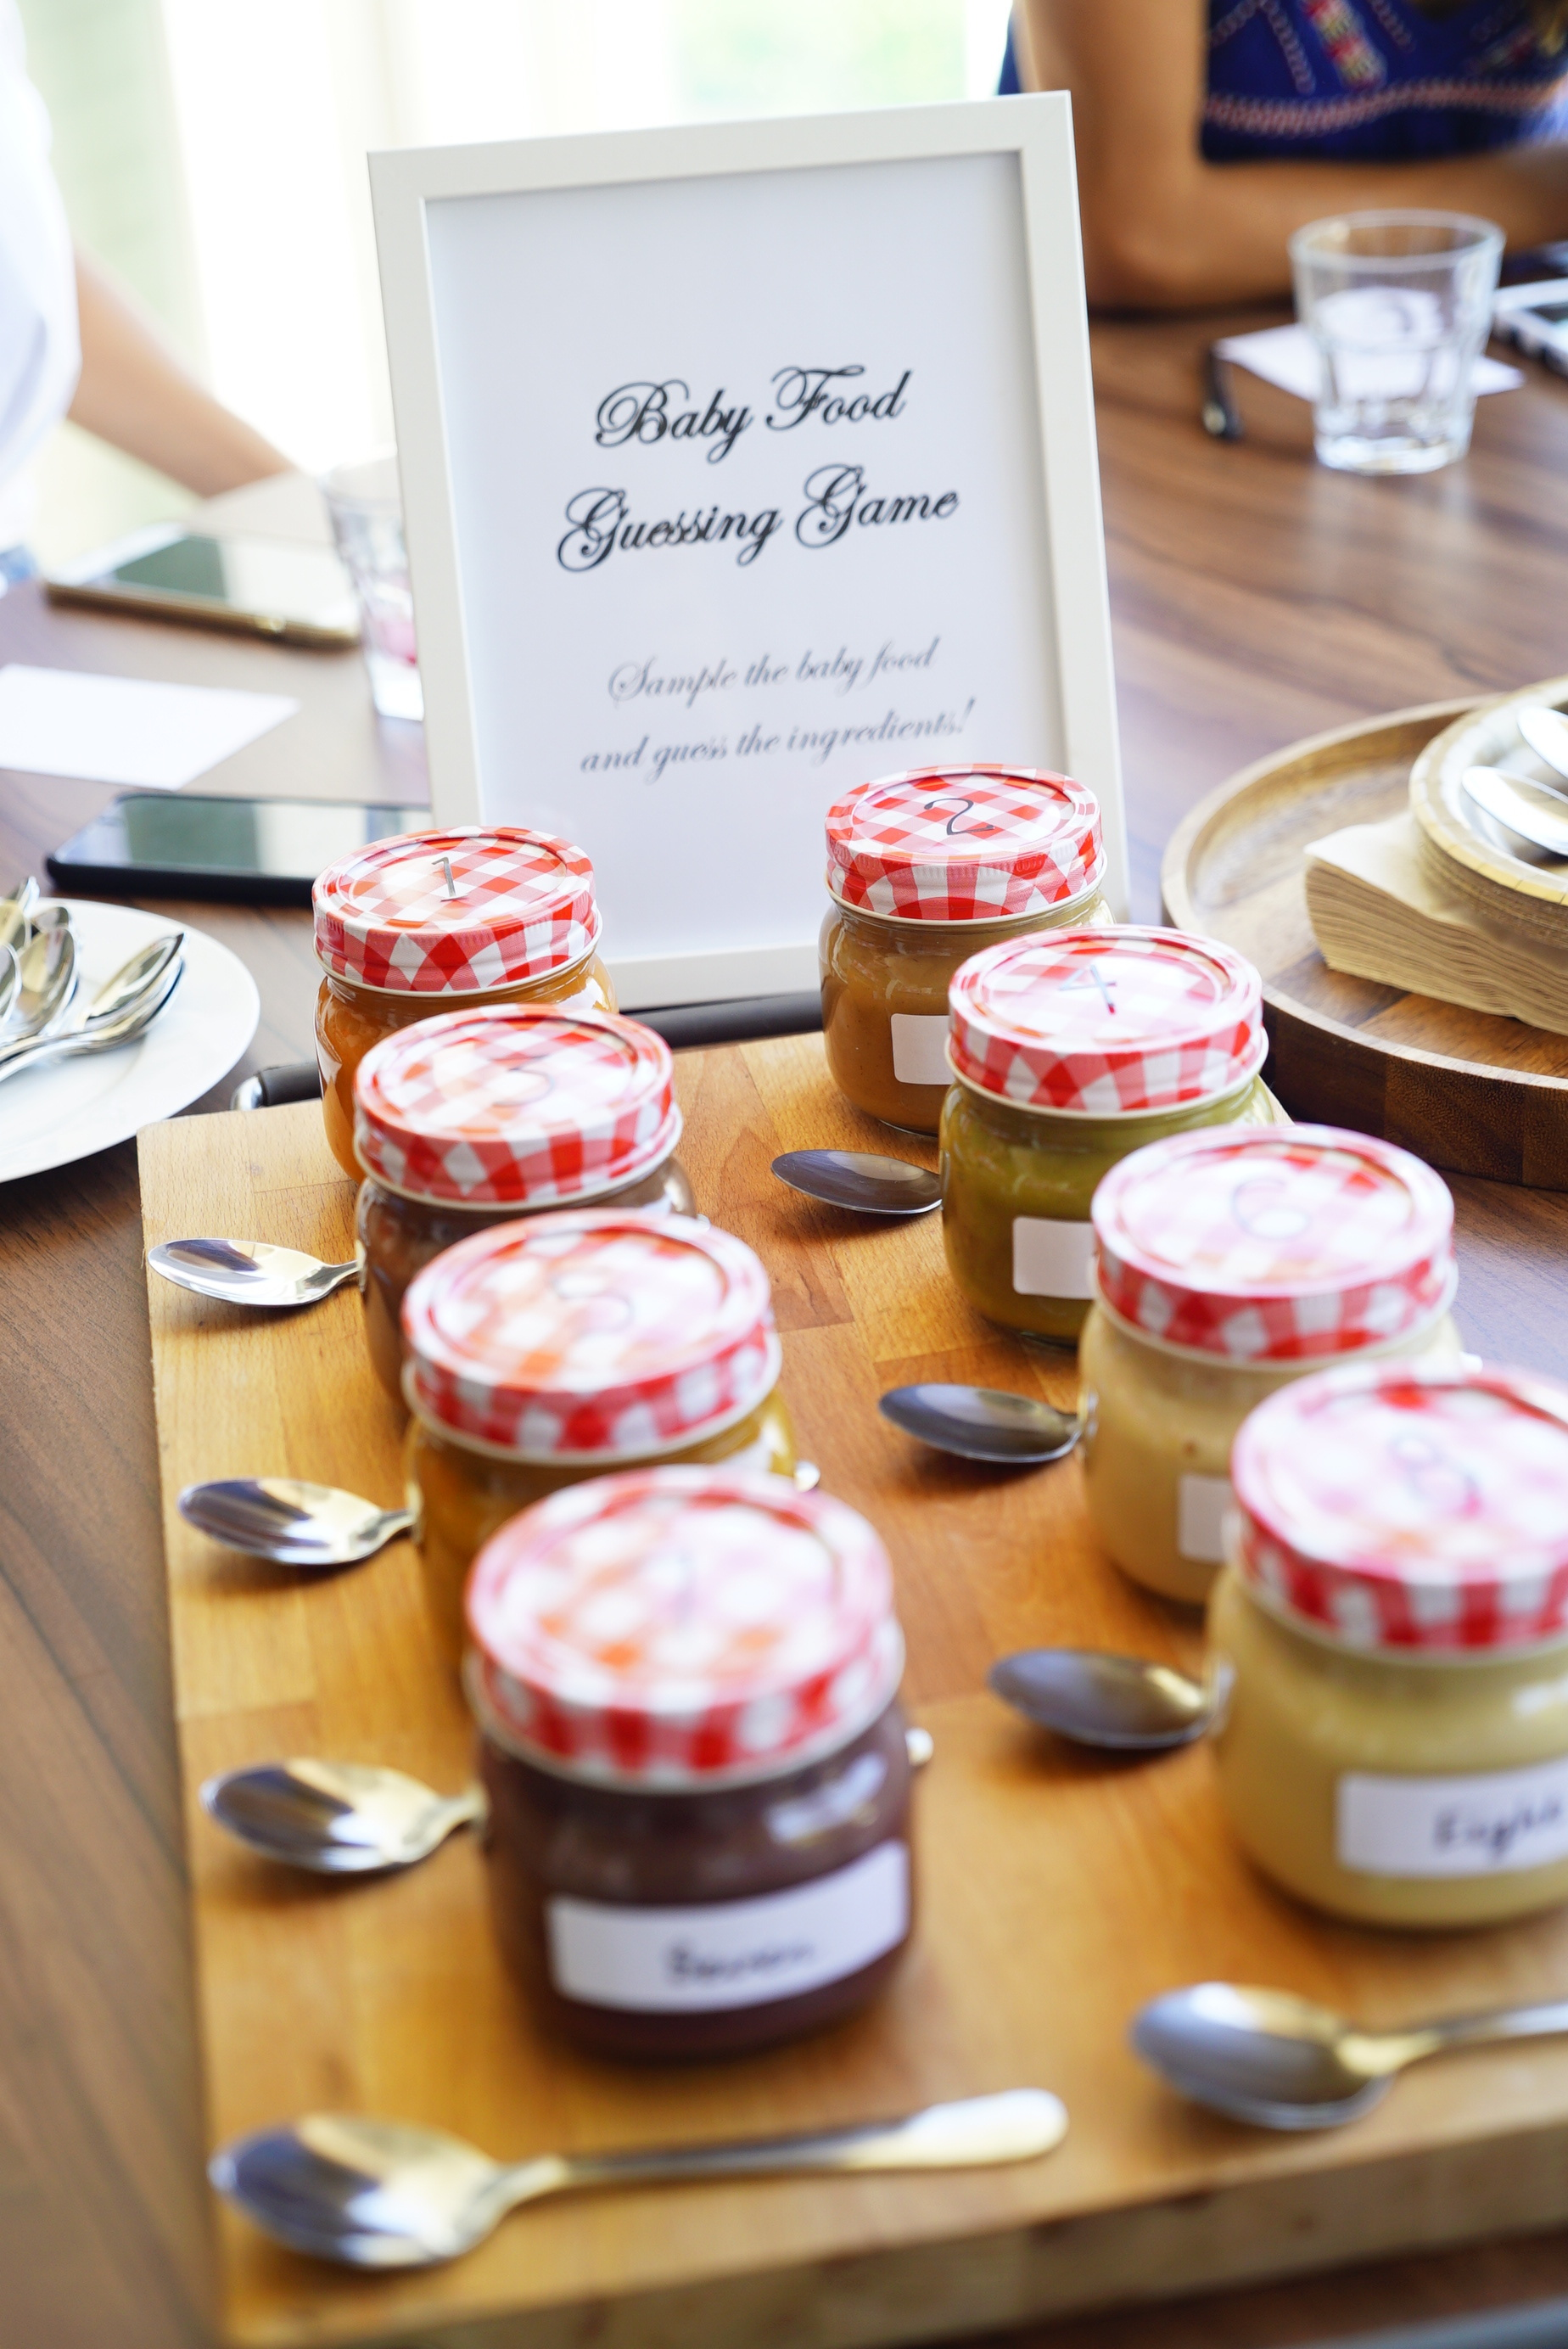 baby shower baby food guessing game.JPG